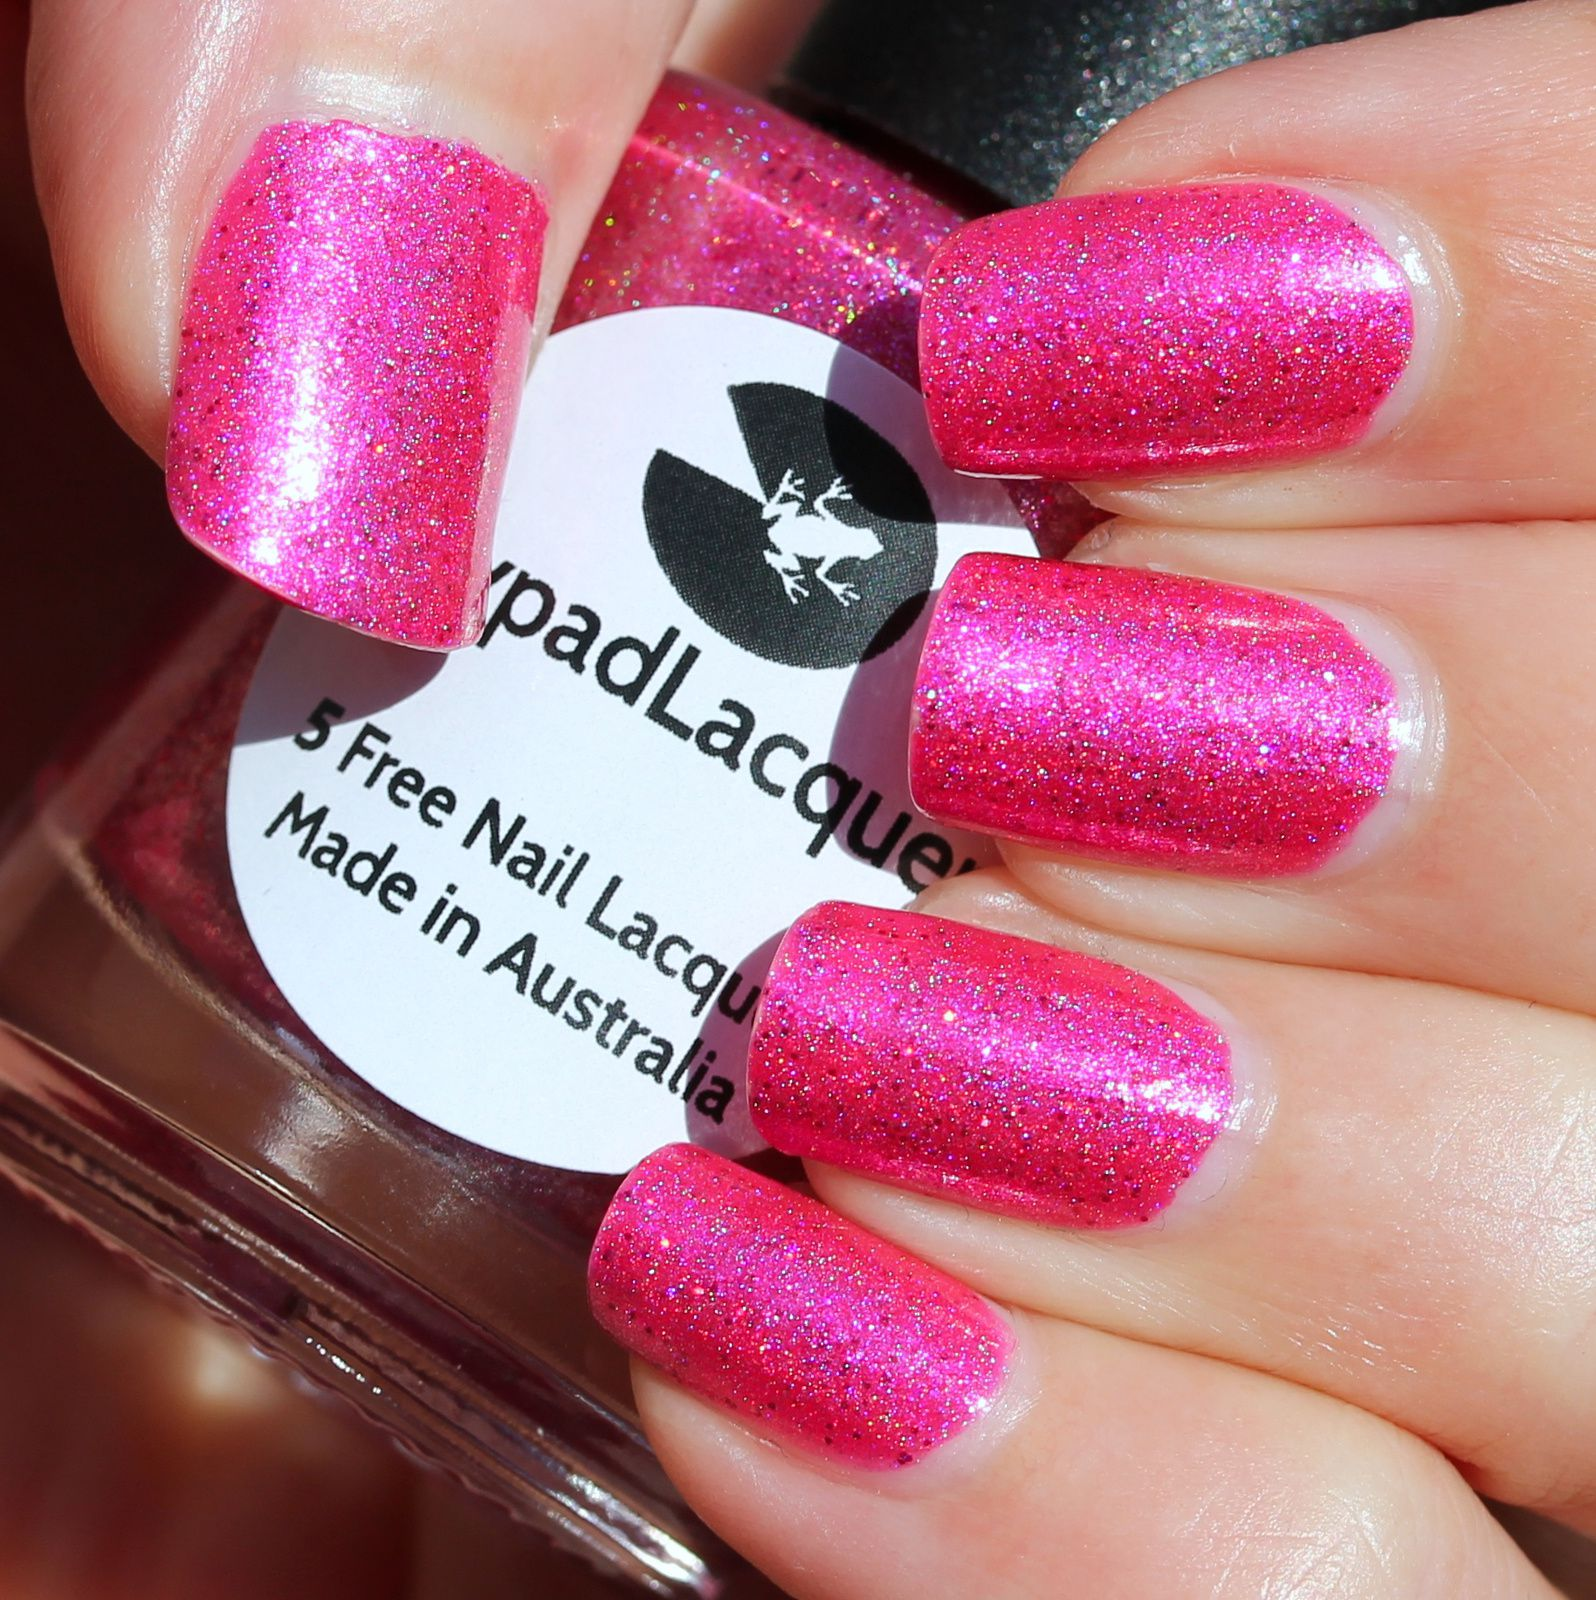 Lilypad Lacquer Pink Polish Preferred (Group Custom)